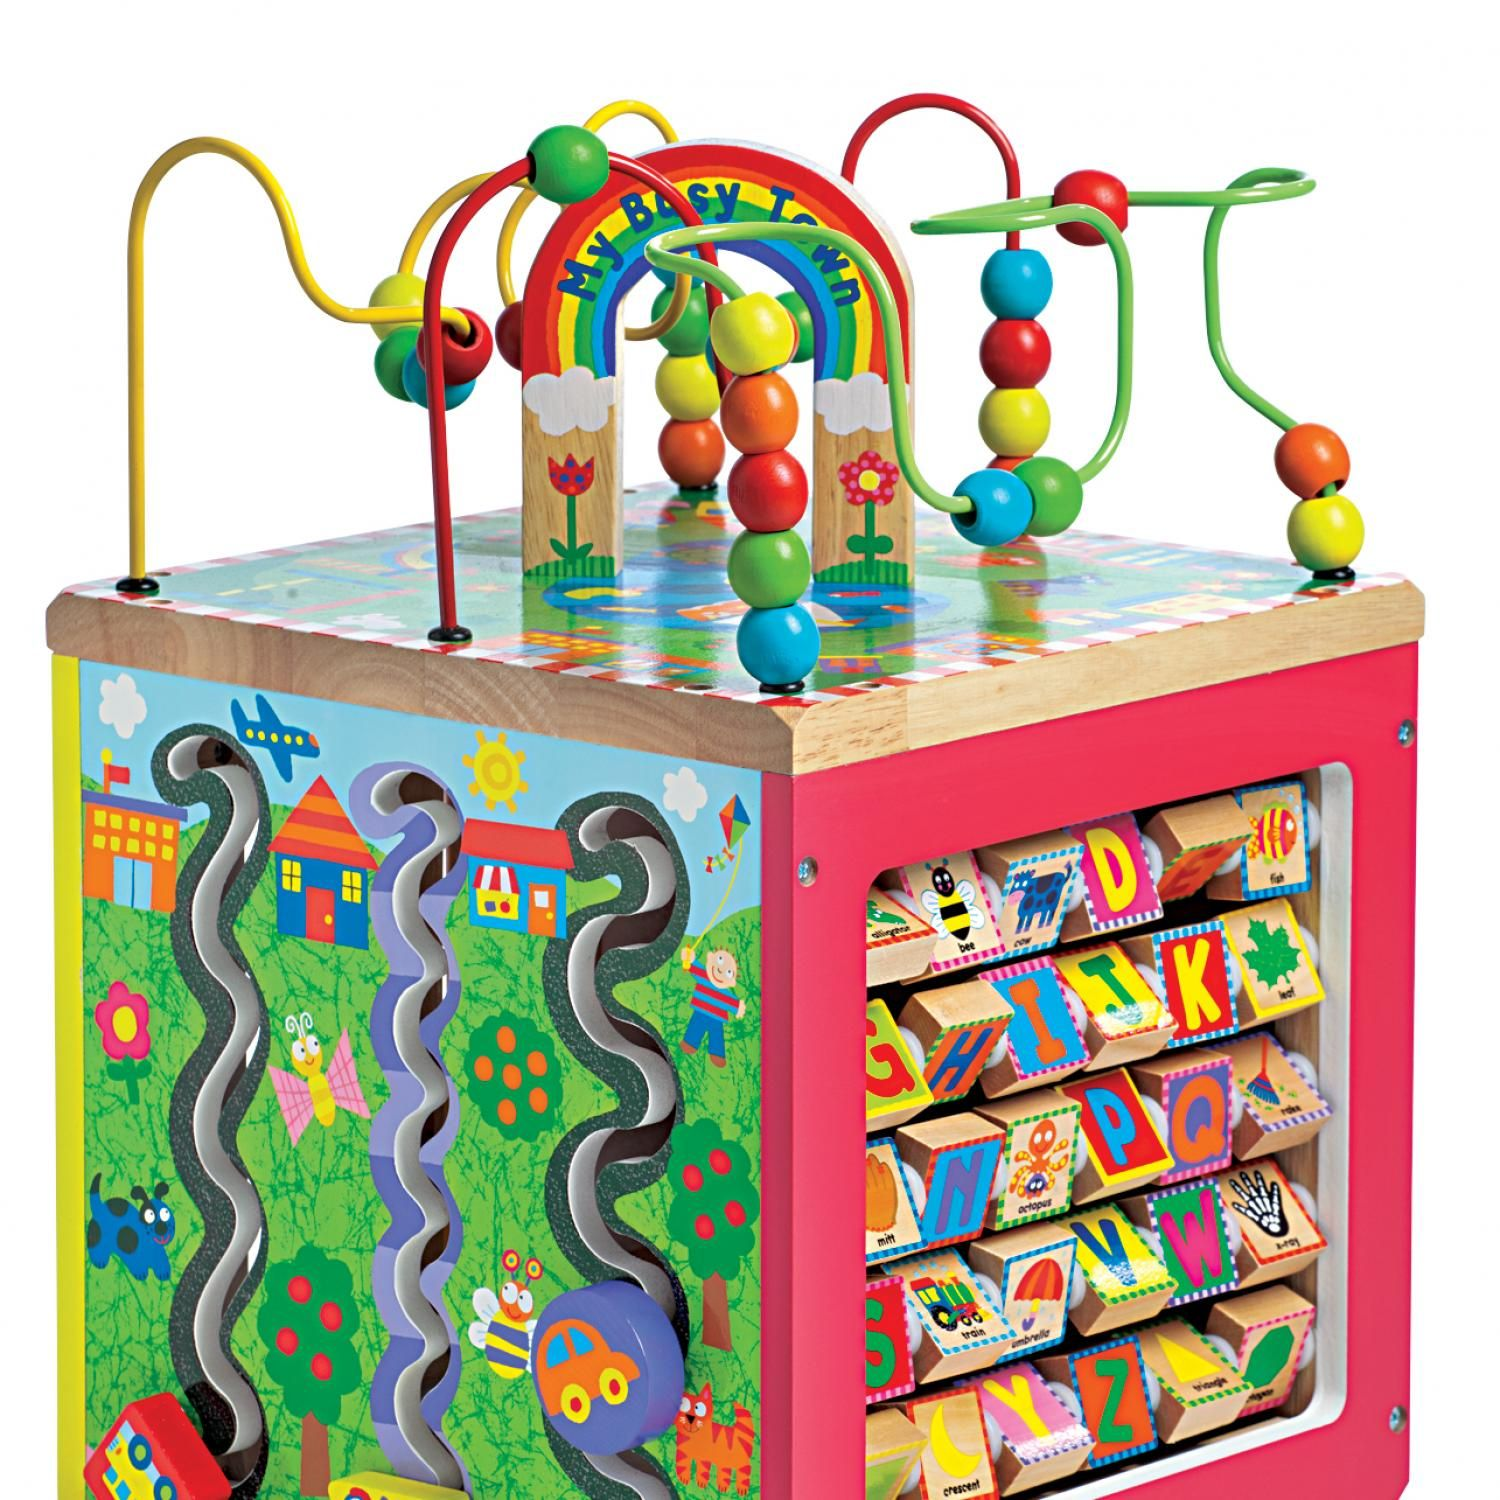 756c4eedb319 Check out toys for 0-12 month olds